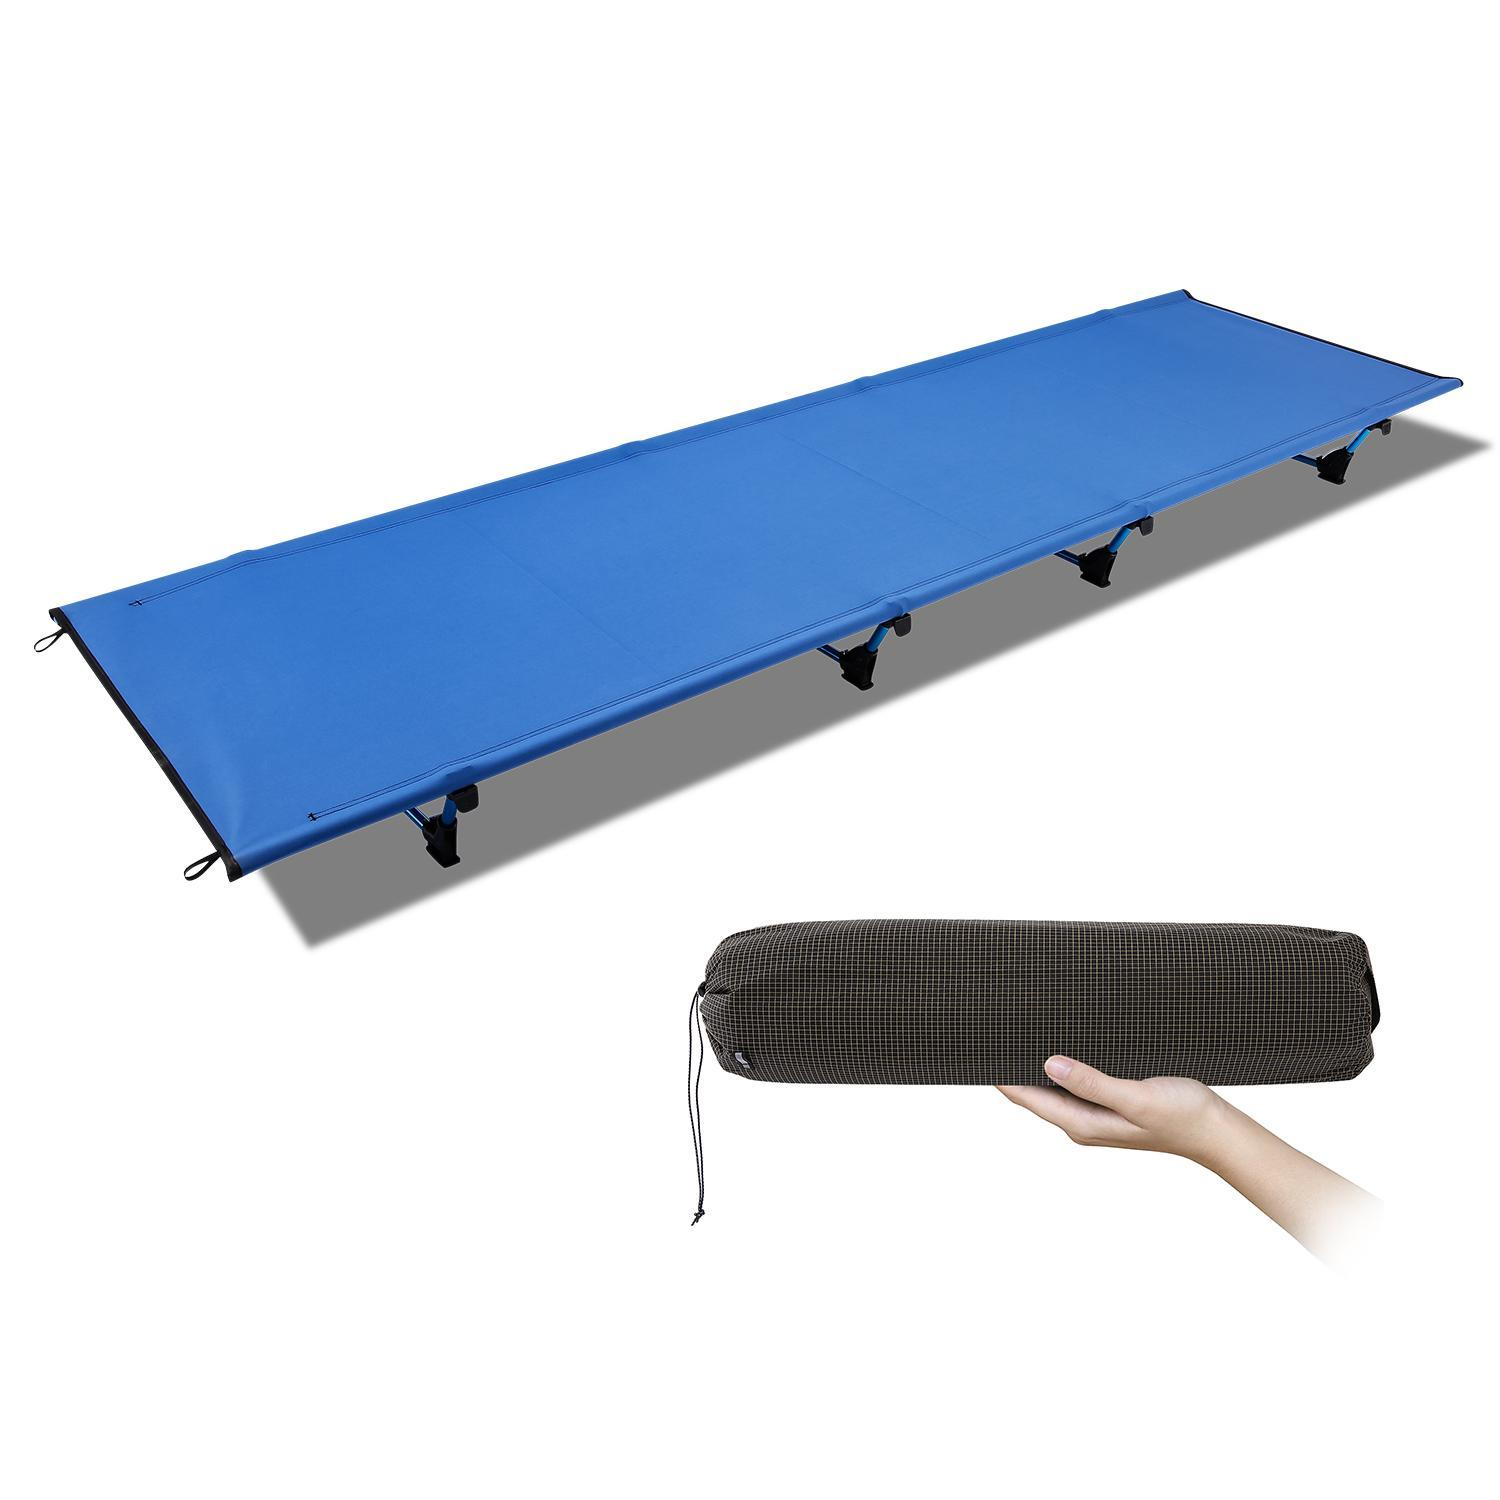 Waterproof Folding Camping Cot Hunting Camping Breathable Bed Ultralight WSY by